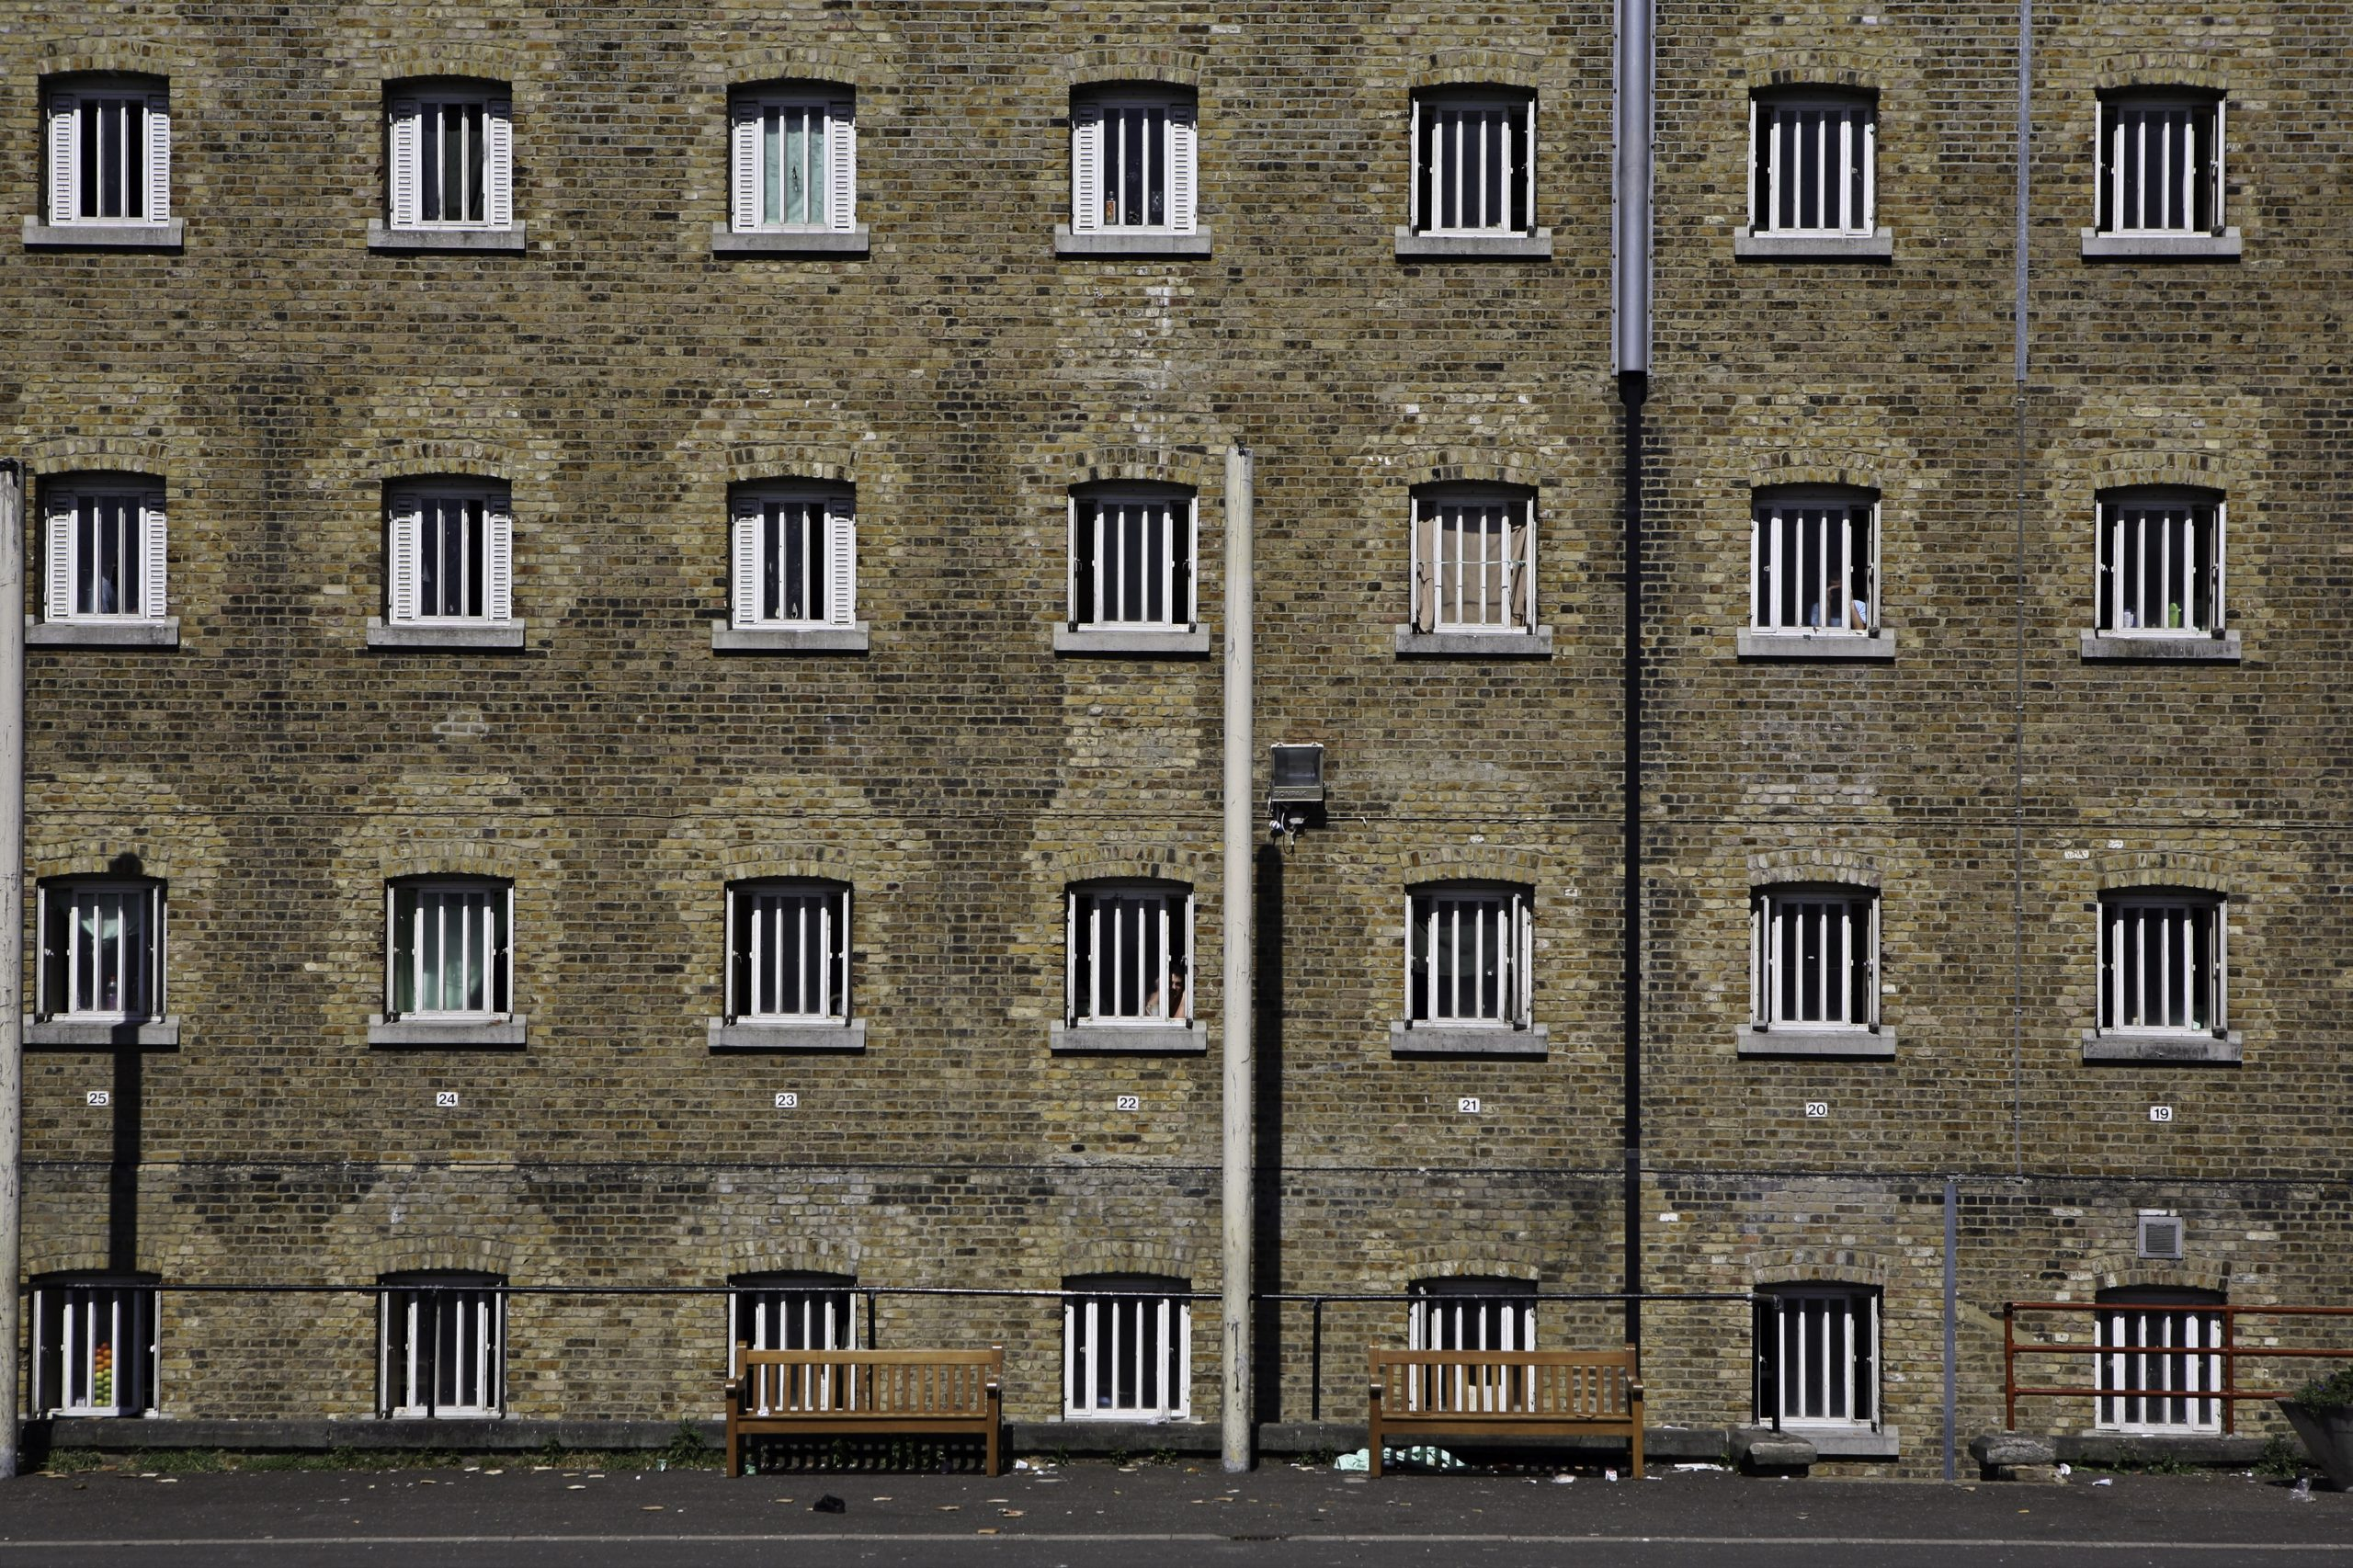 Symptomatic prisoners at Wandsworth locked in cells for up to two weeks